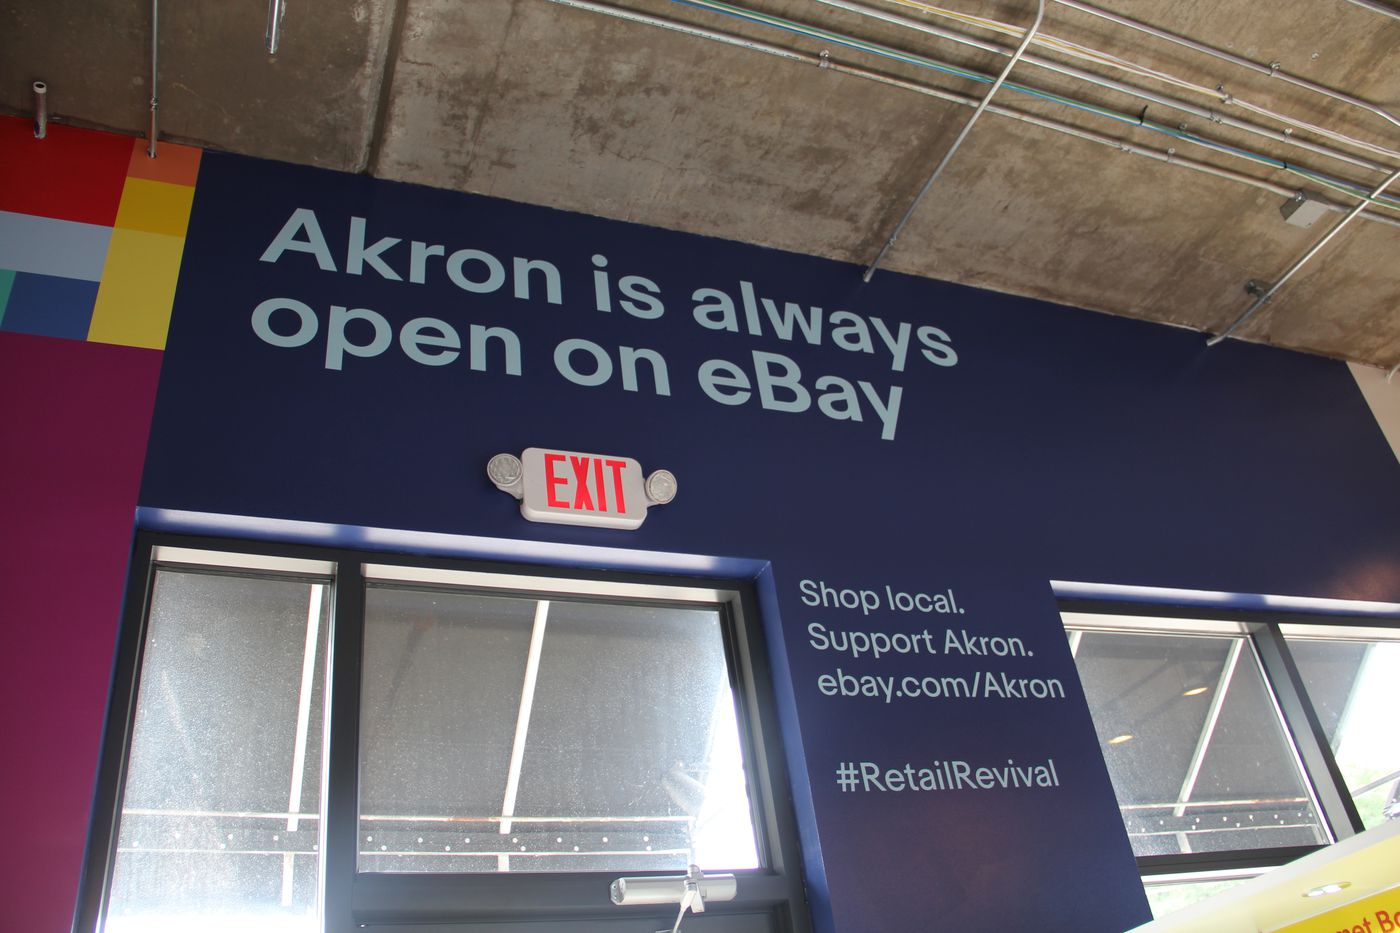 Ebay's Retail Revival positions e-commerce as small-store